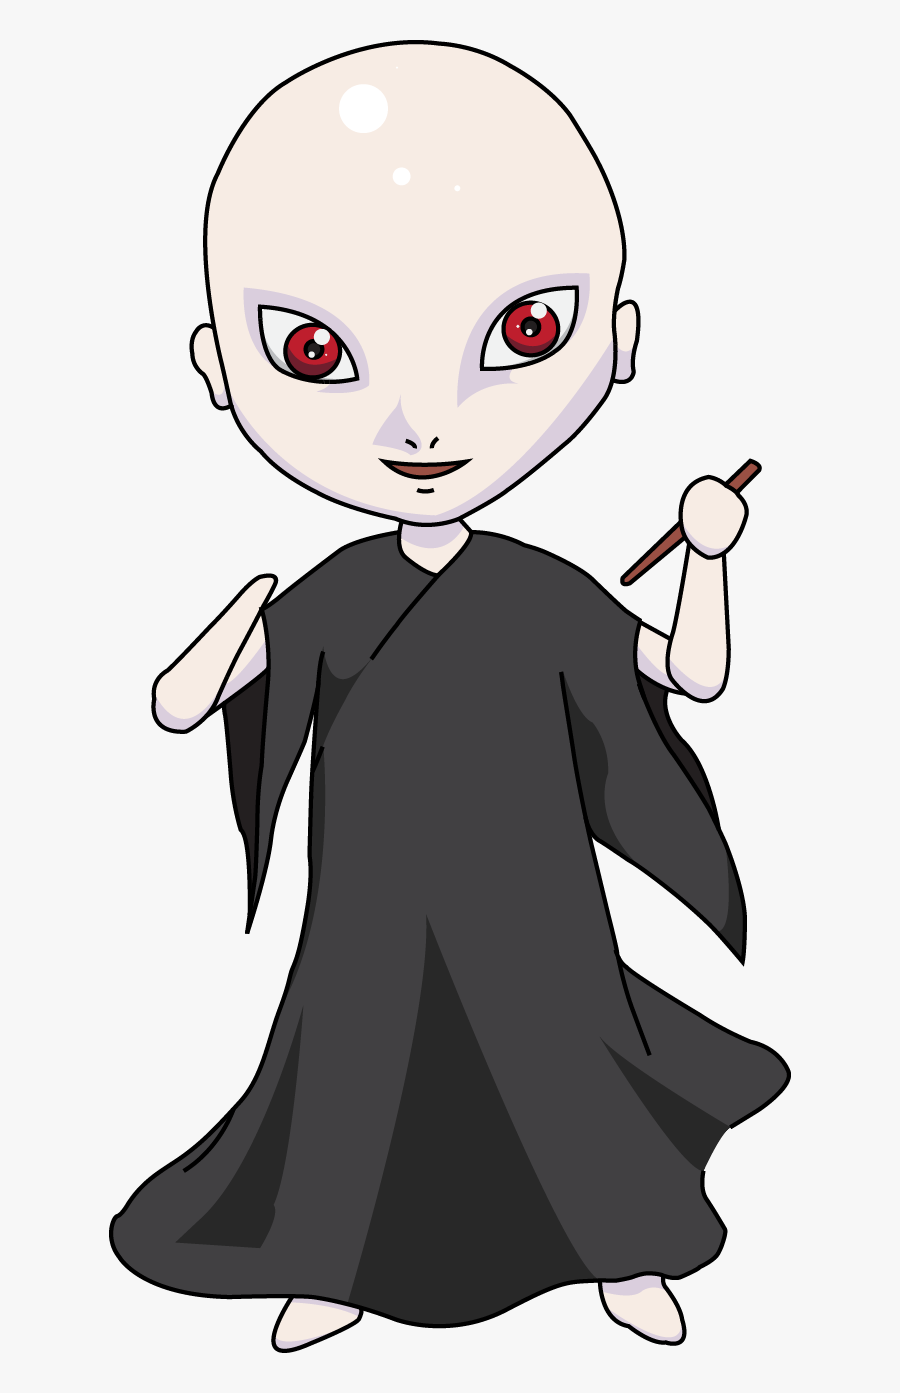 Cartoon Voldemort Transparent Background, Transparent Clipart